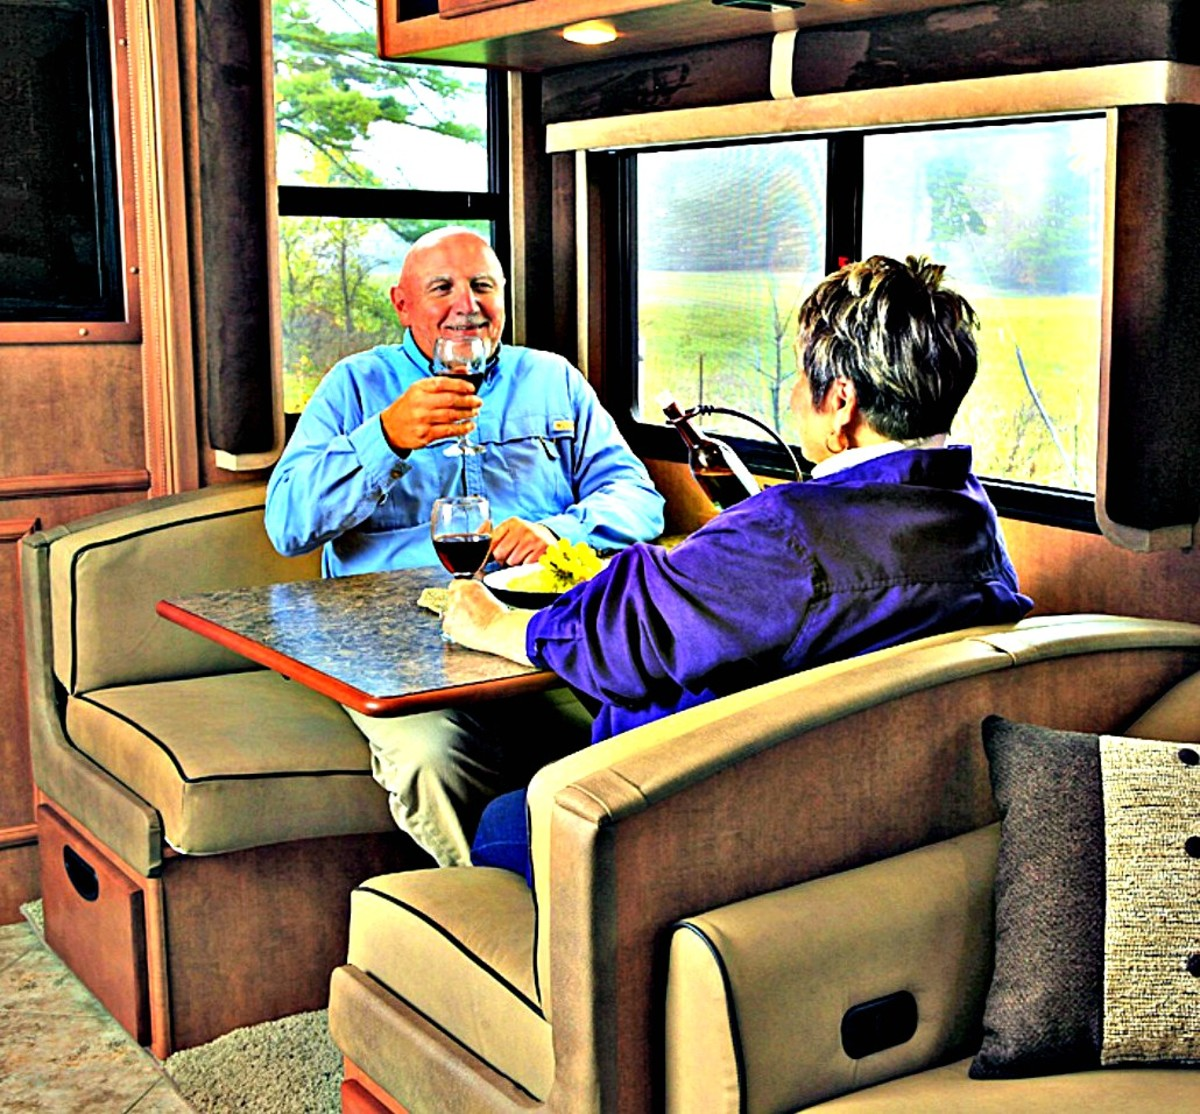 For some, moving to an RV provides money for extras they might not otherwise be able to enjoy.